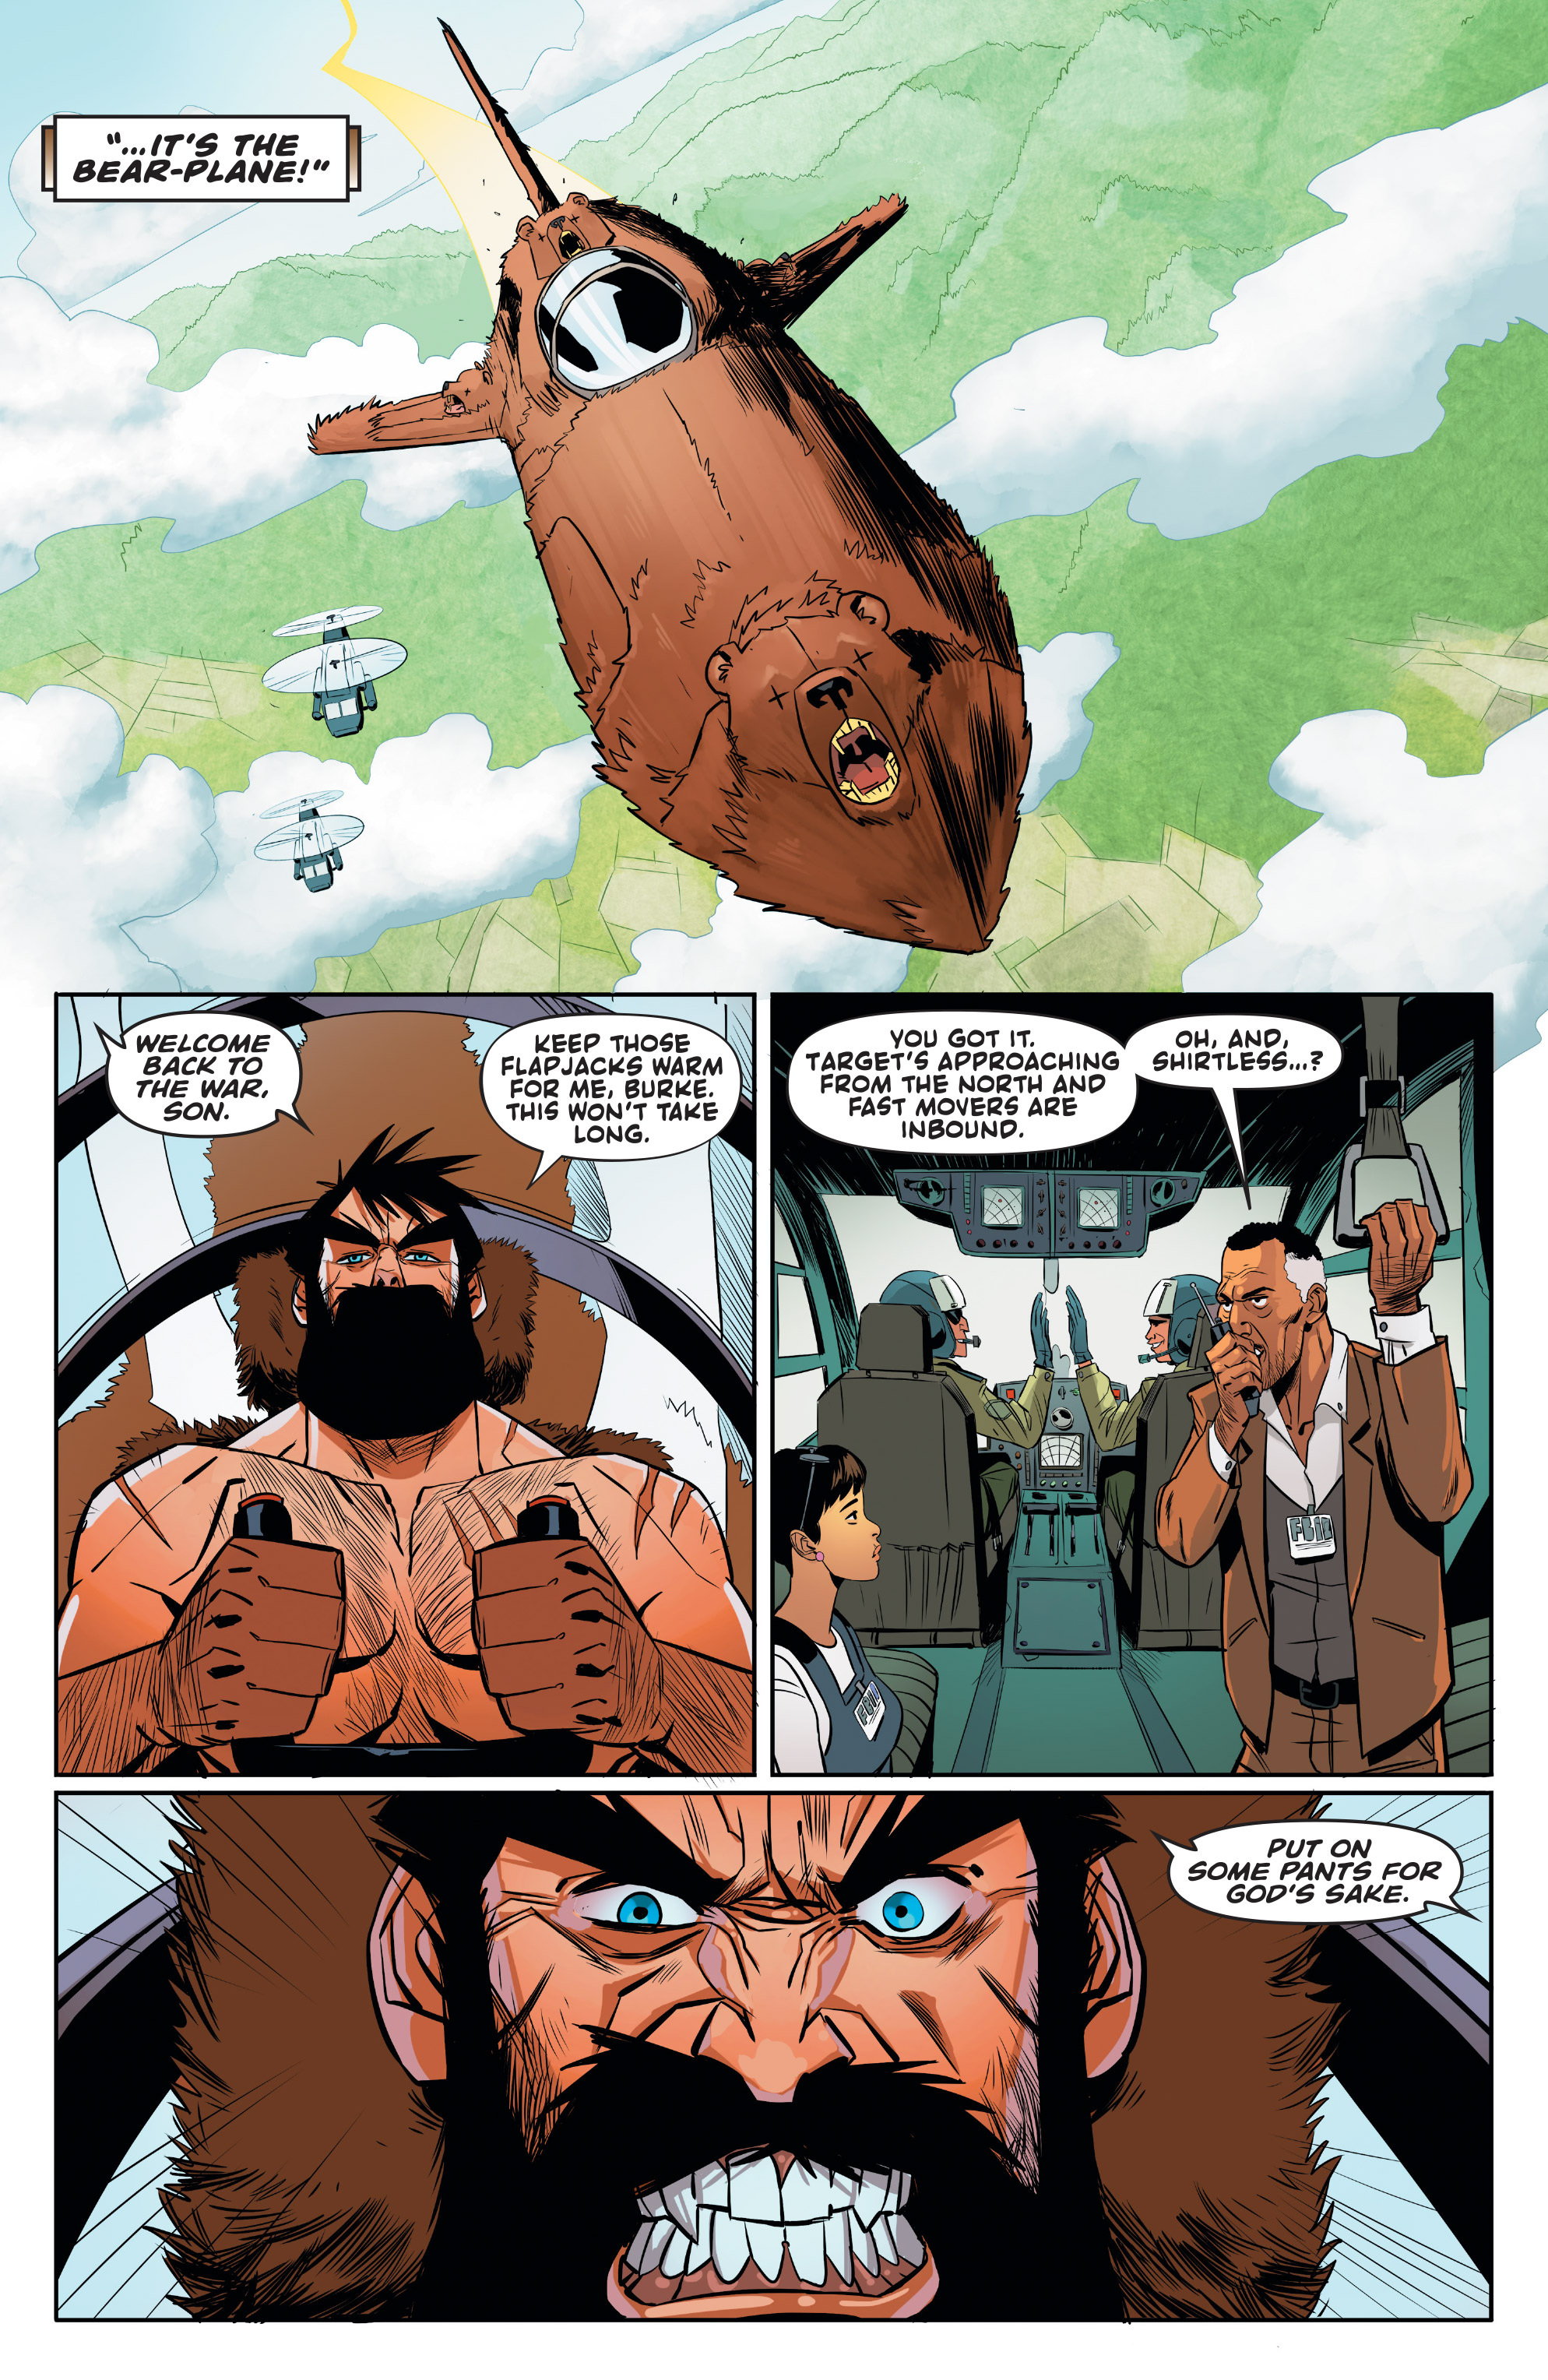 Read online Shirtless Bear-Fighter! comic -  Issue #1 - 24